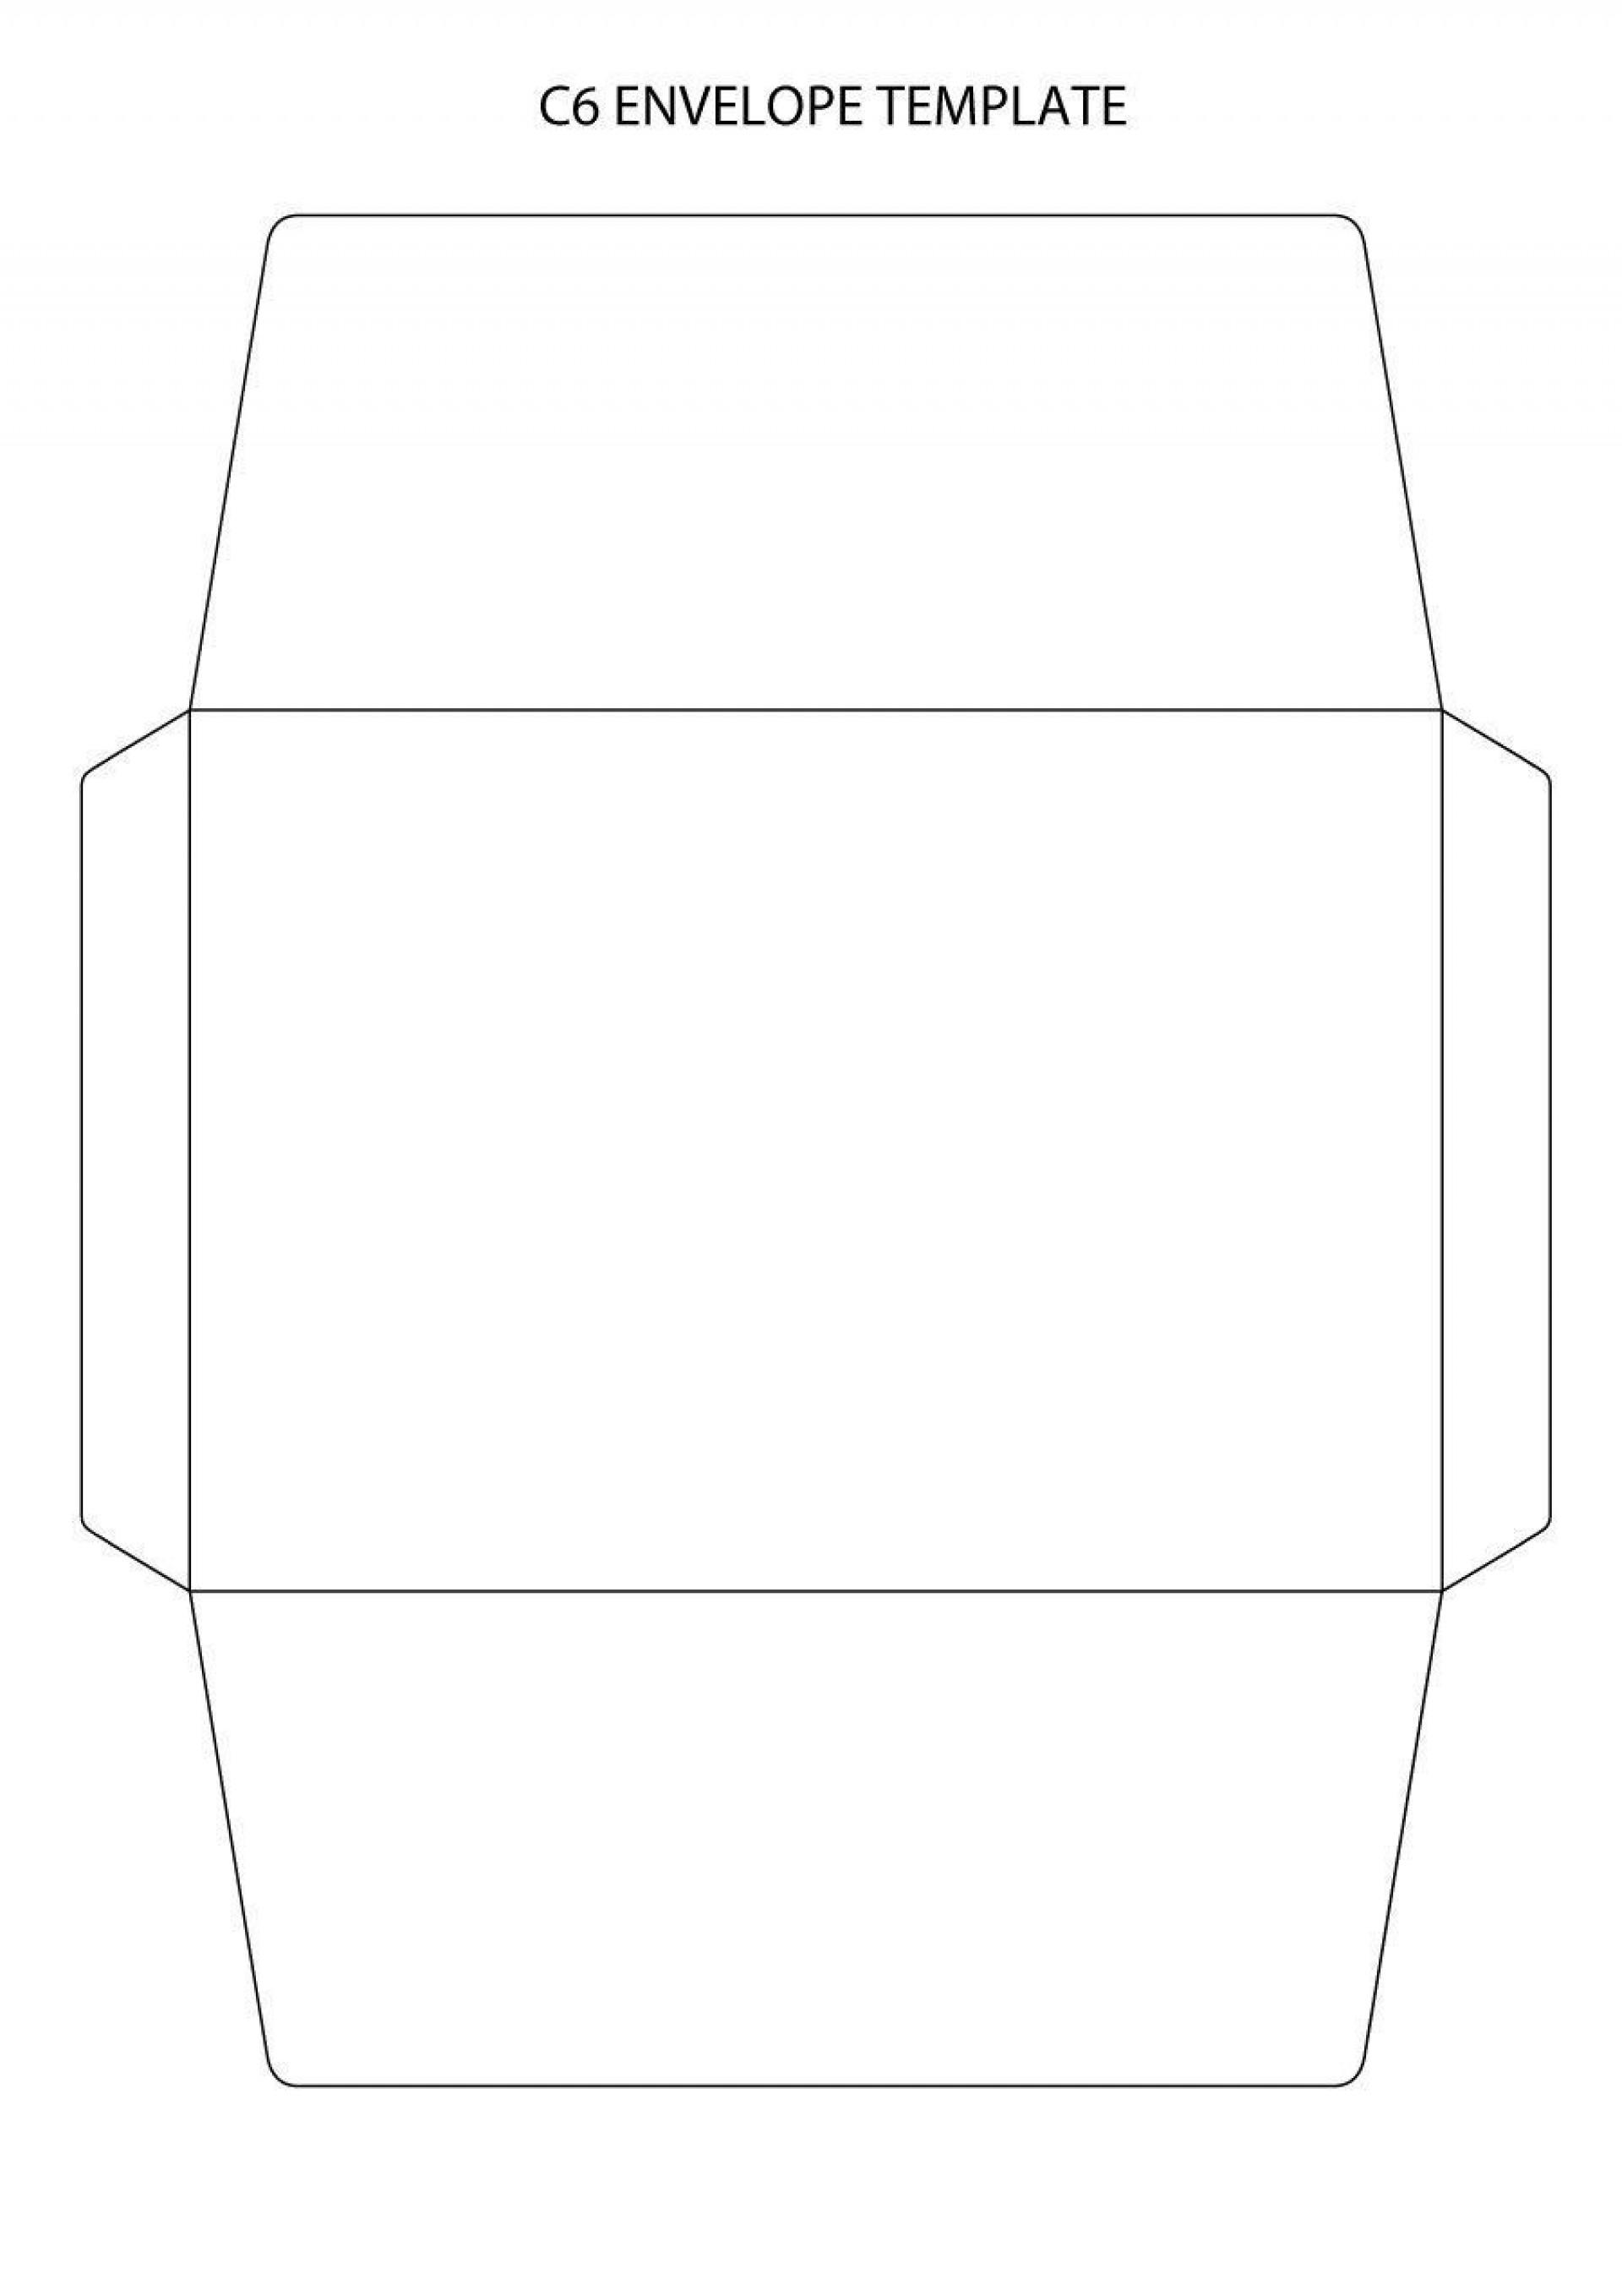 002 Outstanding 10 Envelope Template Word High Definition  Size Microsoft #10 Double Window1920